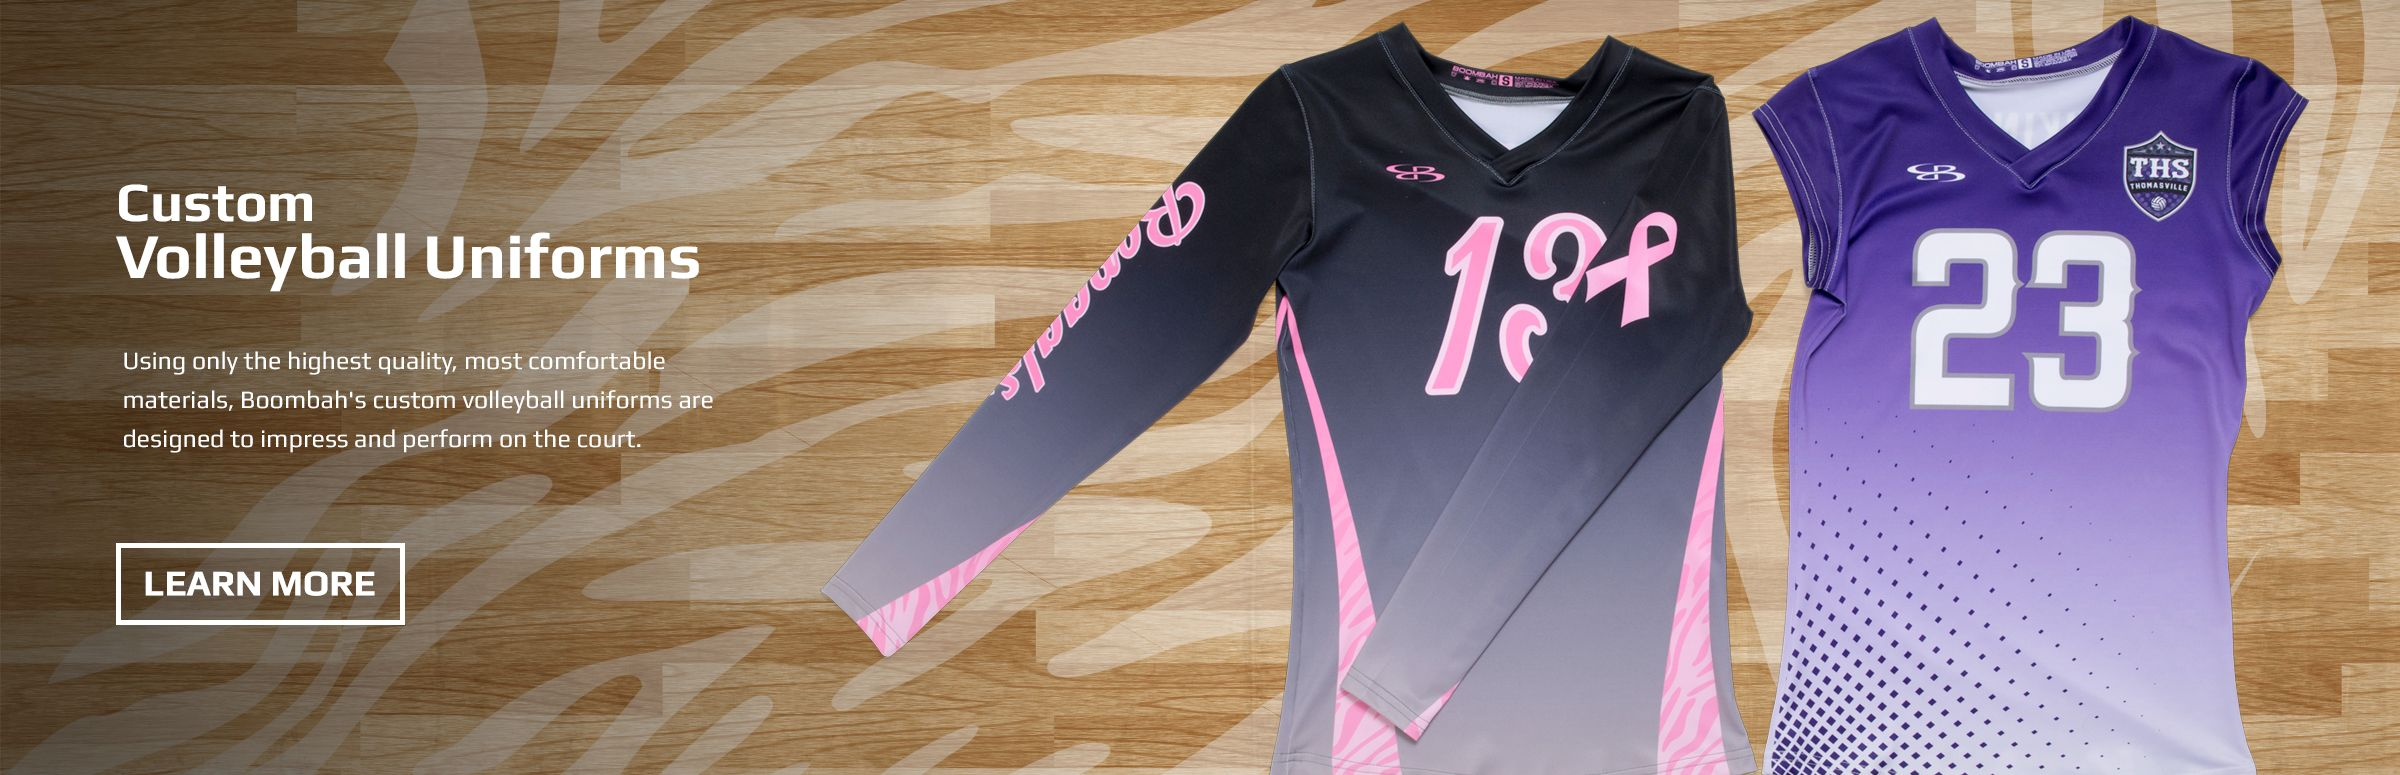 Boombah Volleyball Uniforms